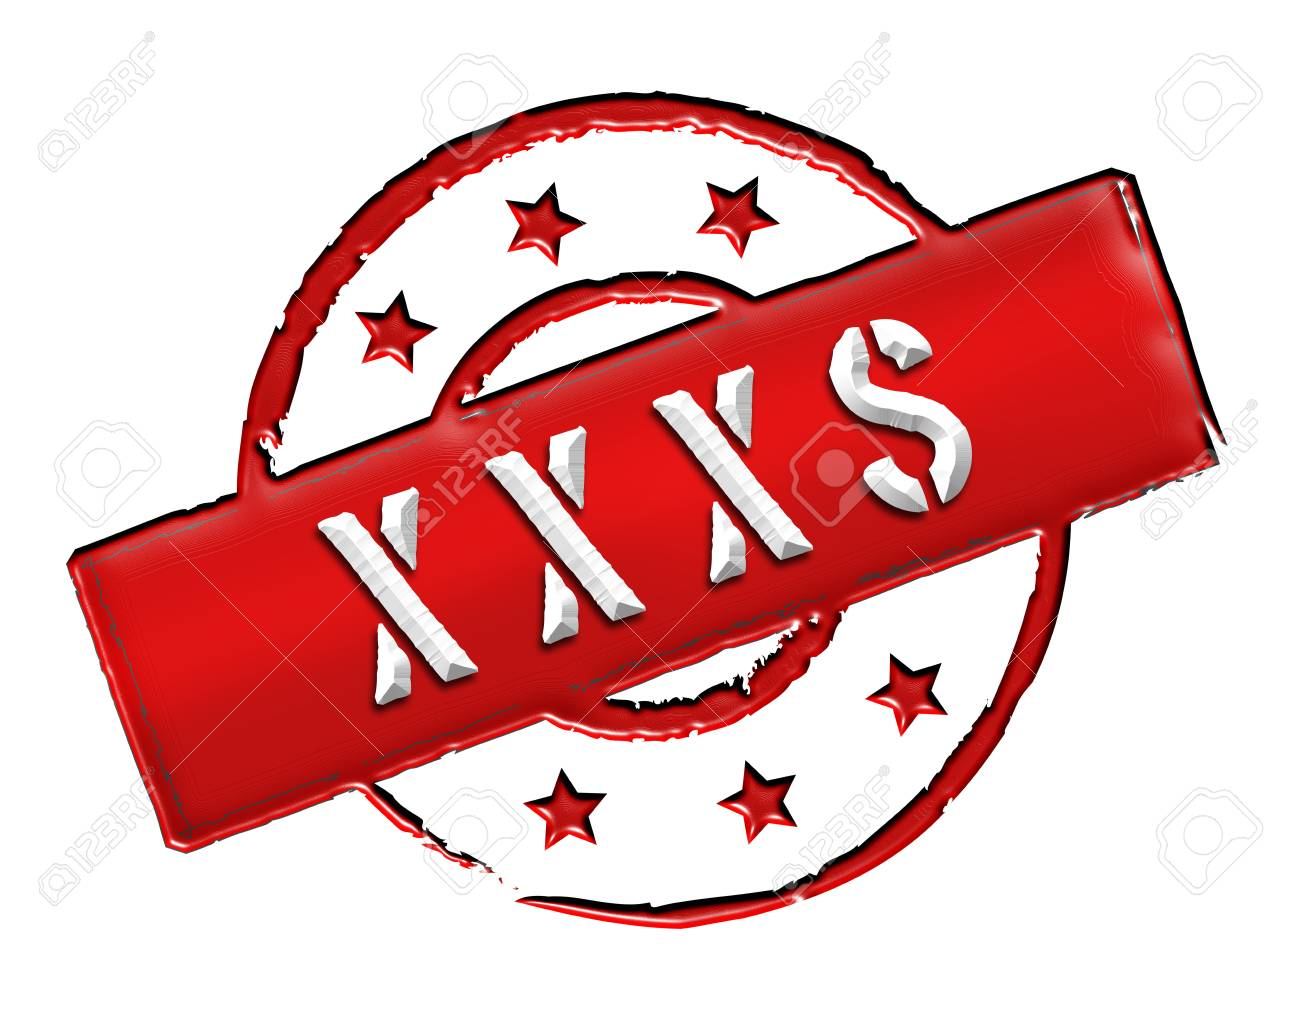 Sign, symbol, stamp or icon for your presentation, for websites and many more named XXXS Stock Photo - 13802149